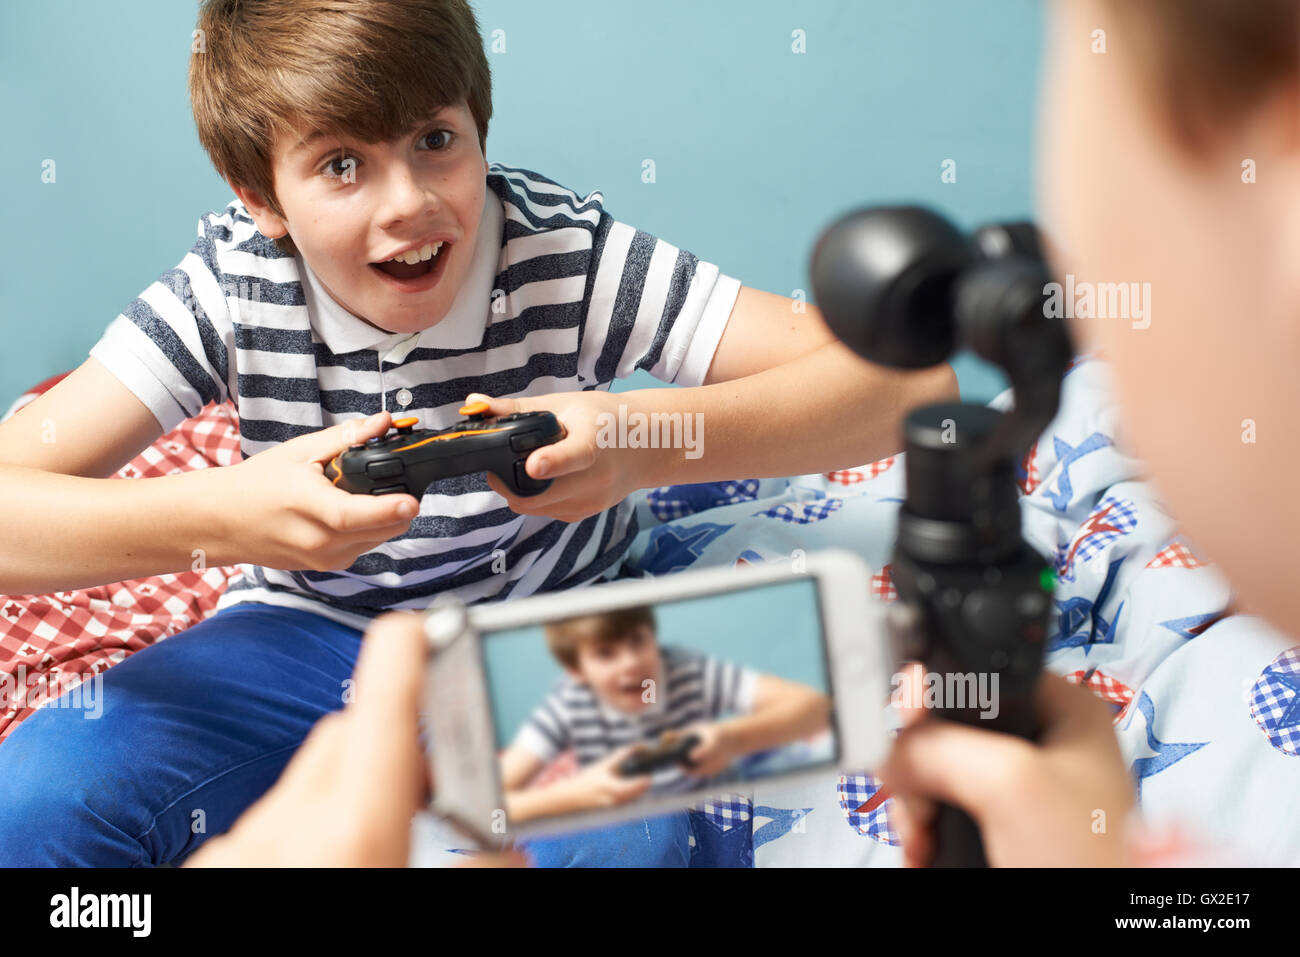 Two Boys Recording Gaming Blog In Bedroom - Stock Image